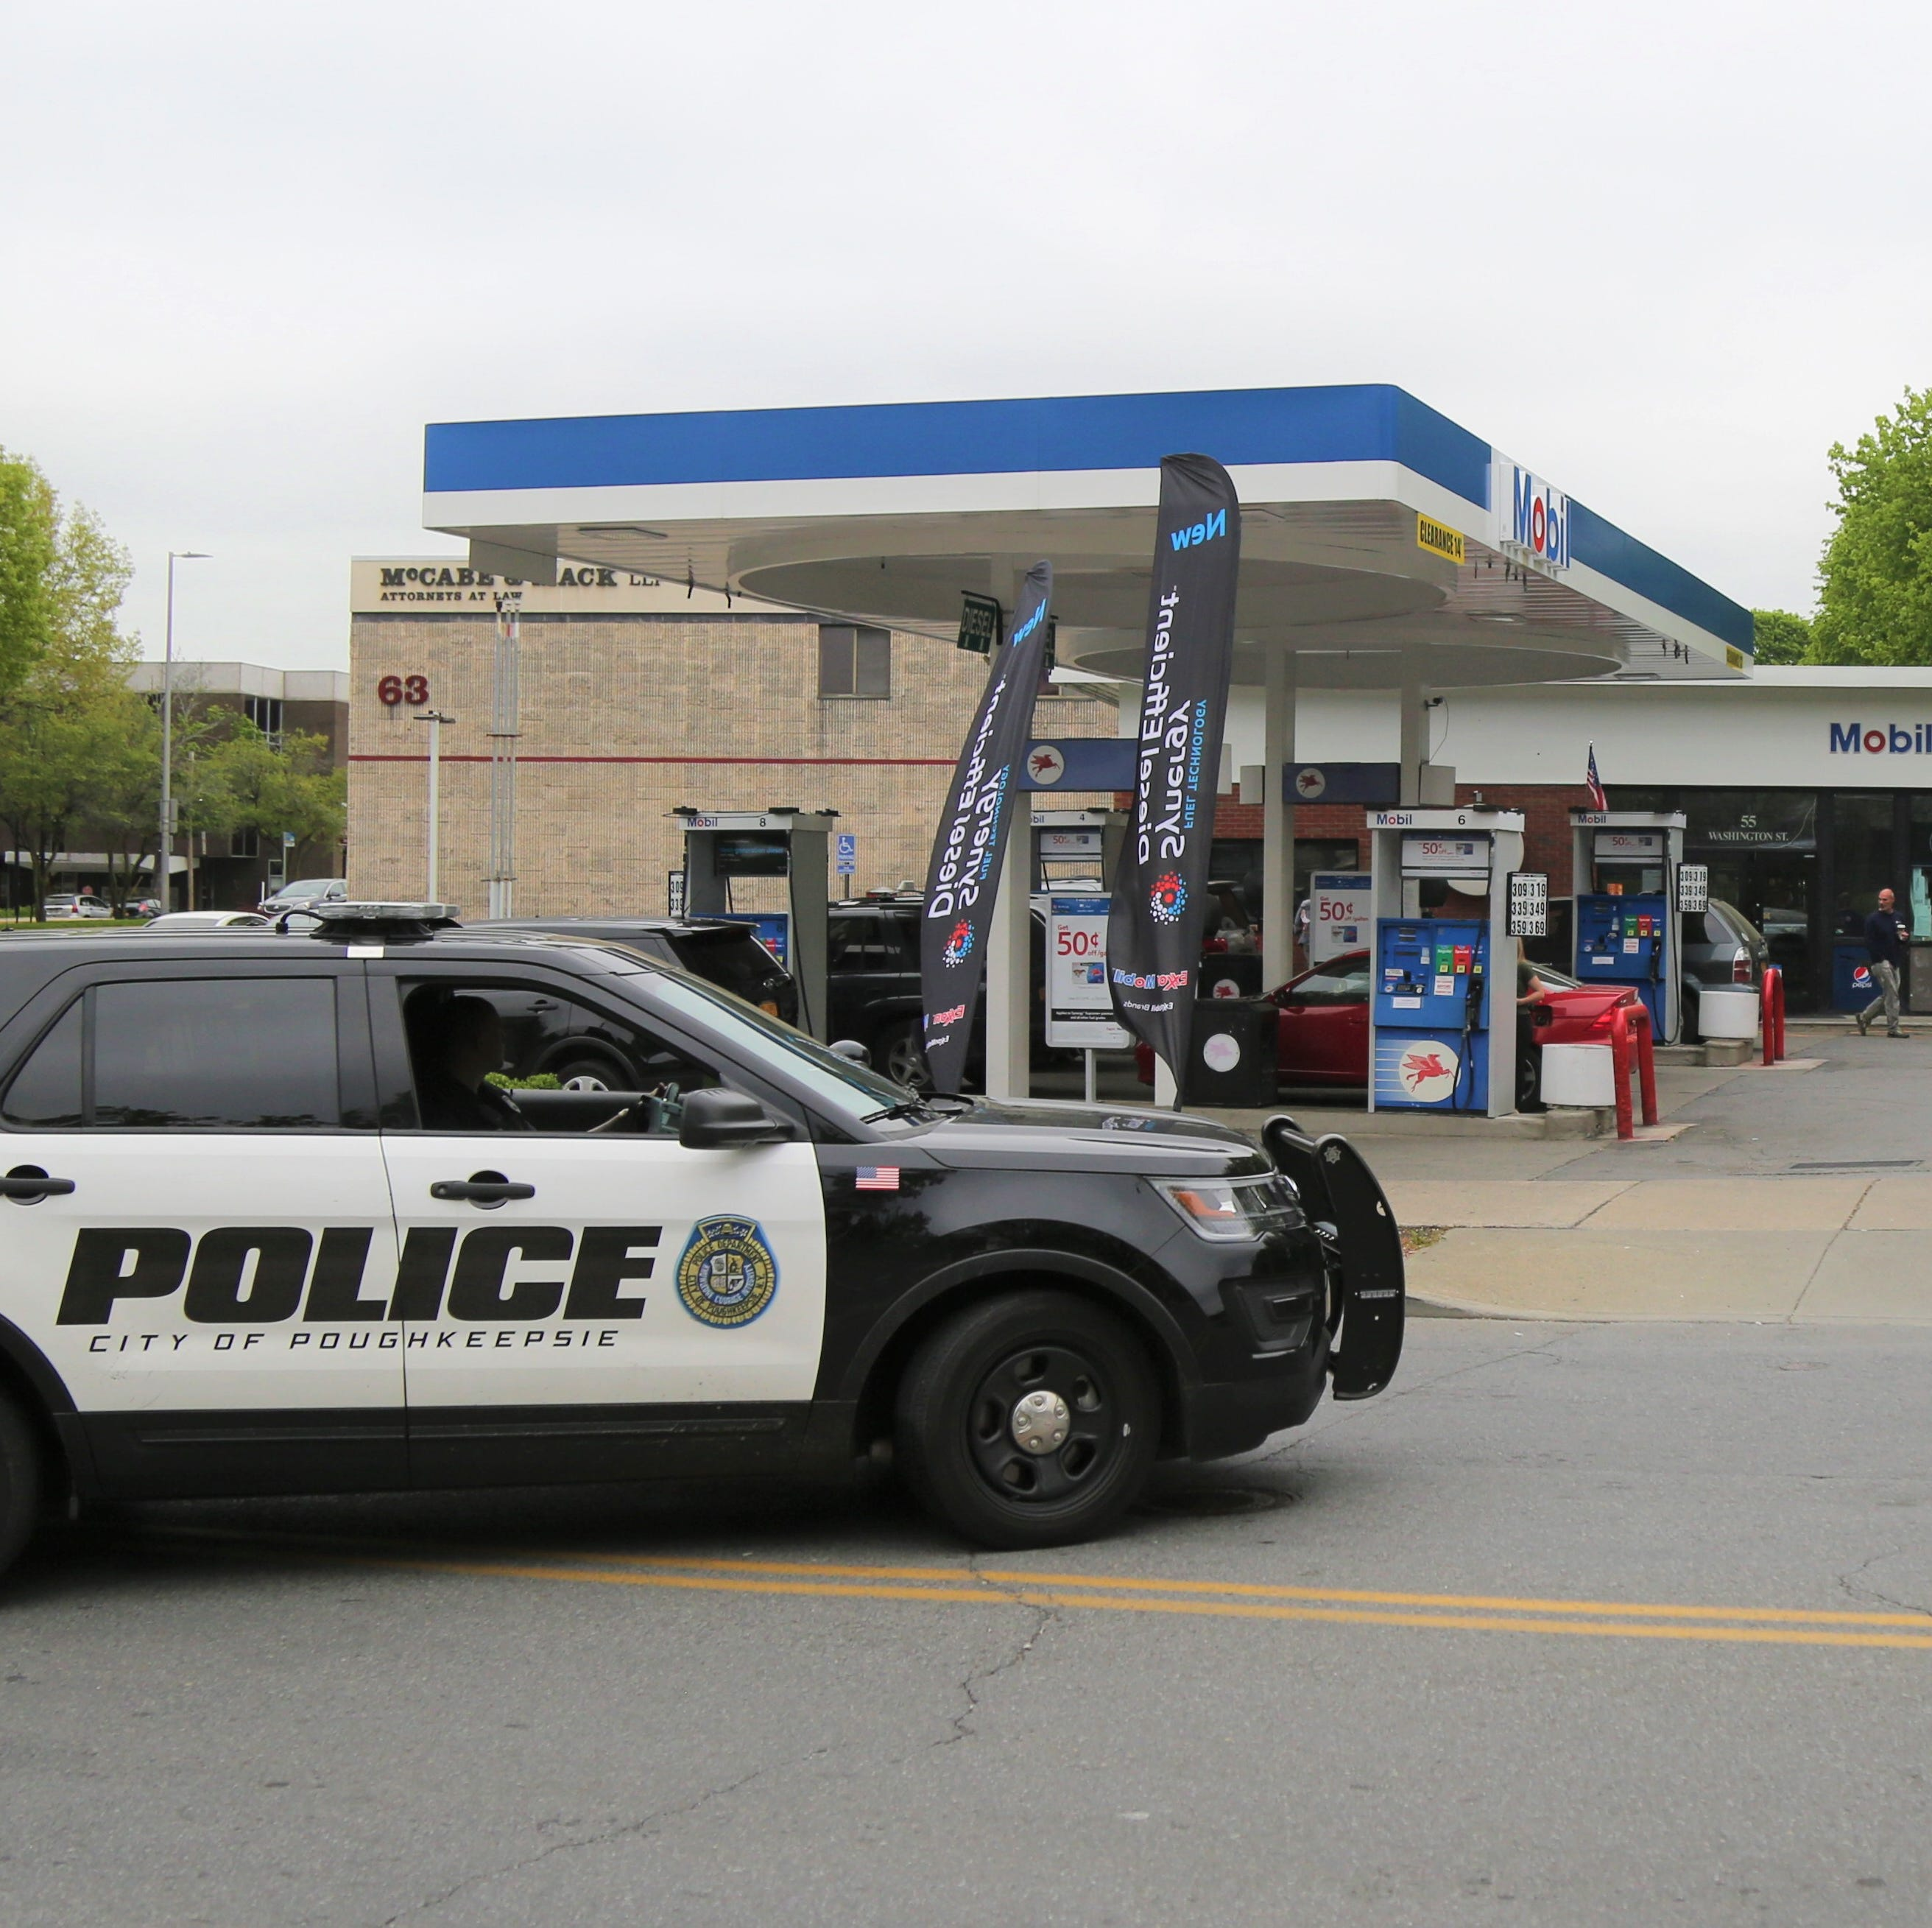 Mobil employee stabbed in City of Poughkeepsie: police